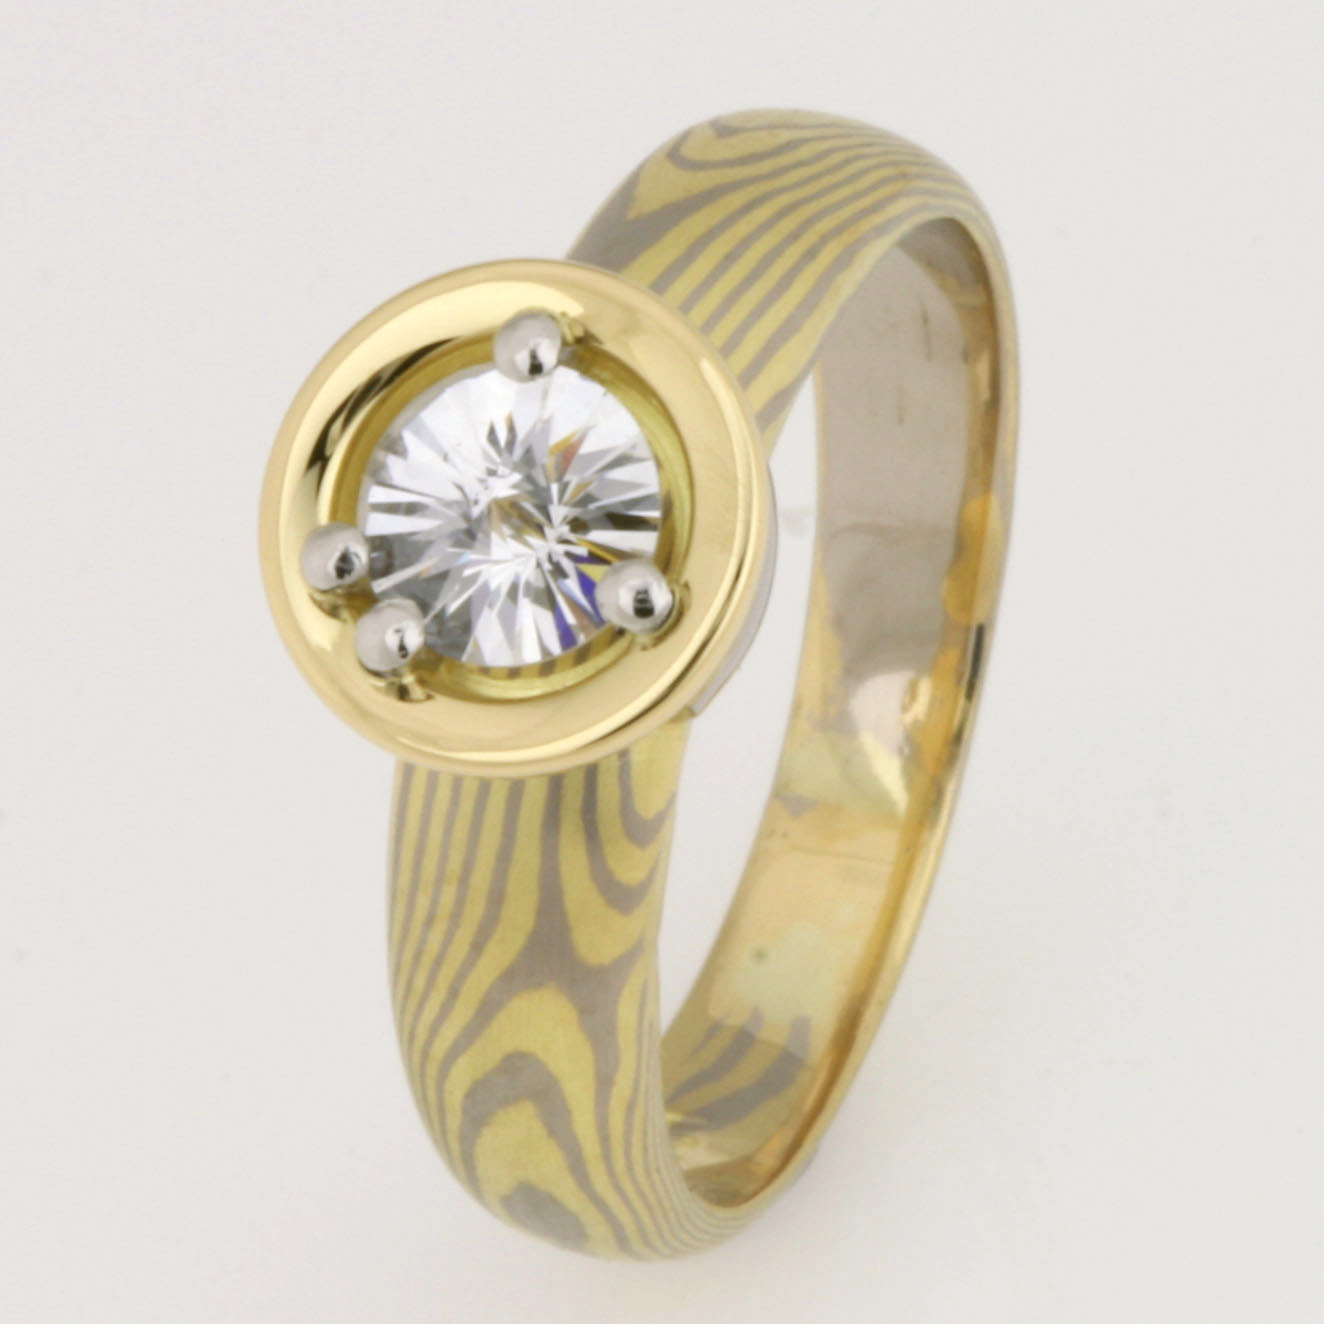 Handmade 18ct yellow & white gold Mokume Gane ring featuring a 'Spirit' cut diamond